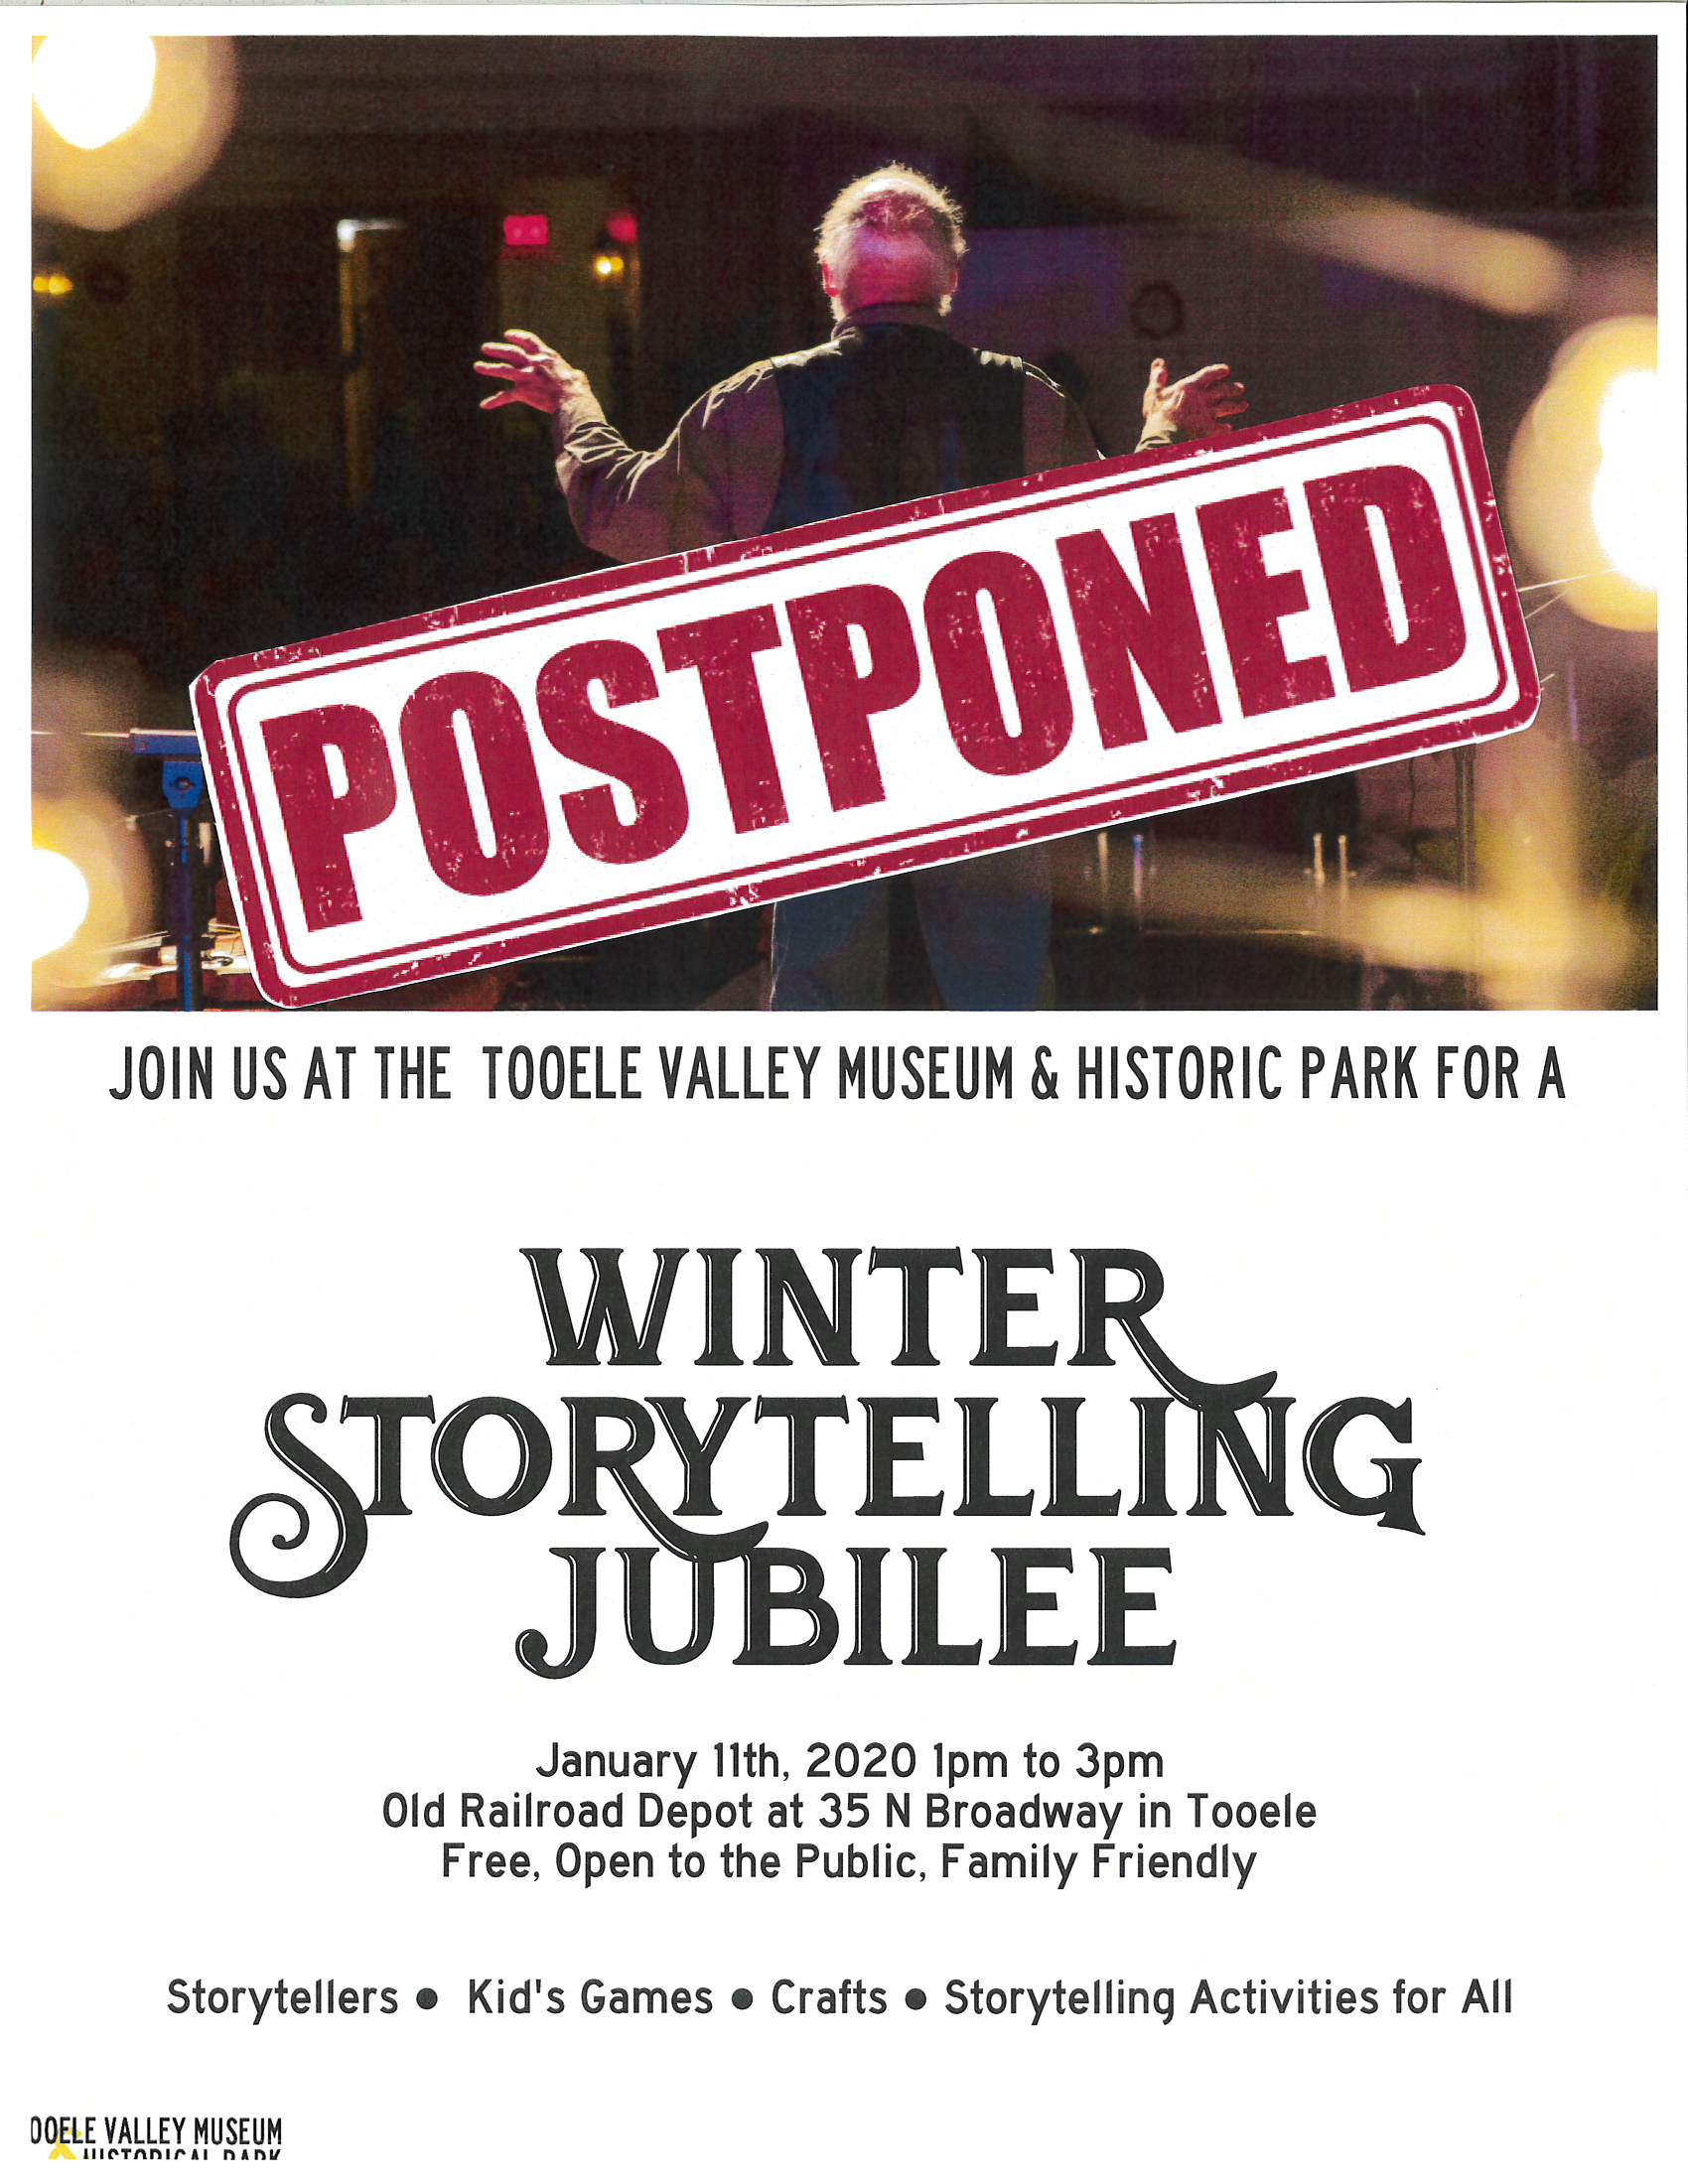 POSTPONED! Winter Storytelling Jubilee @ Tooele Valley Museum (Old Railroad Depot)